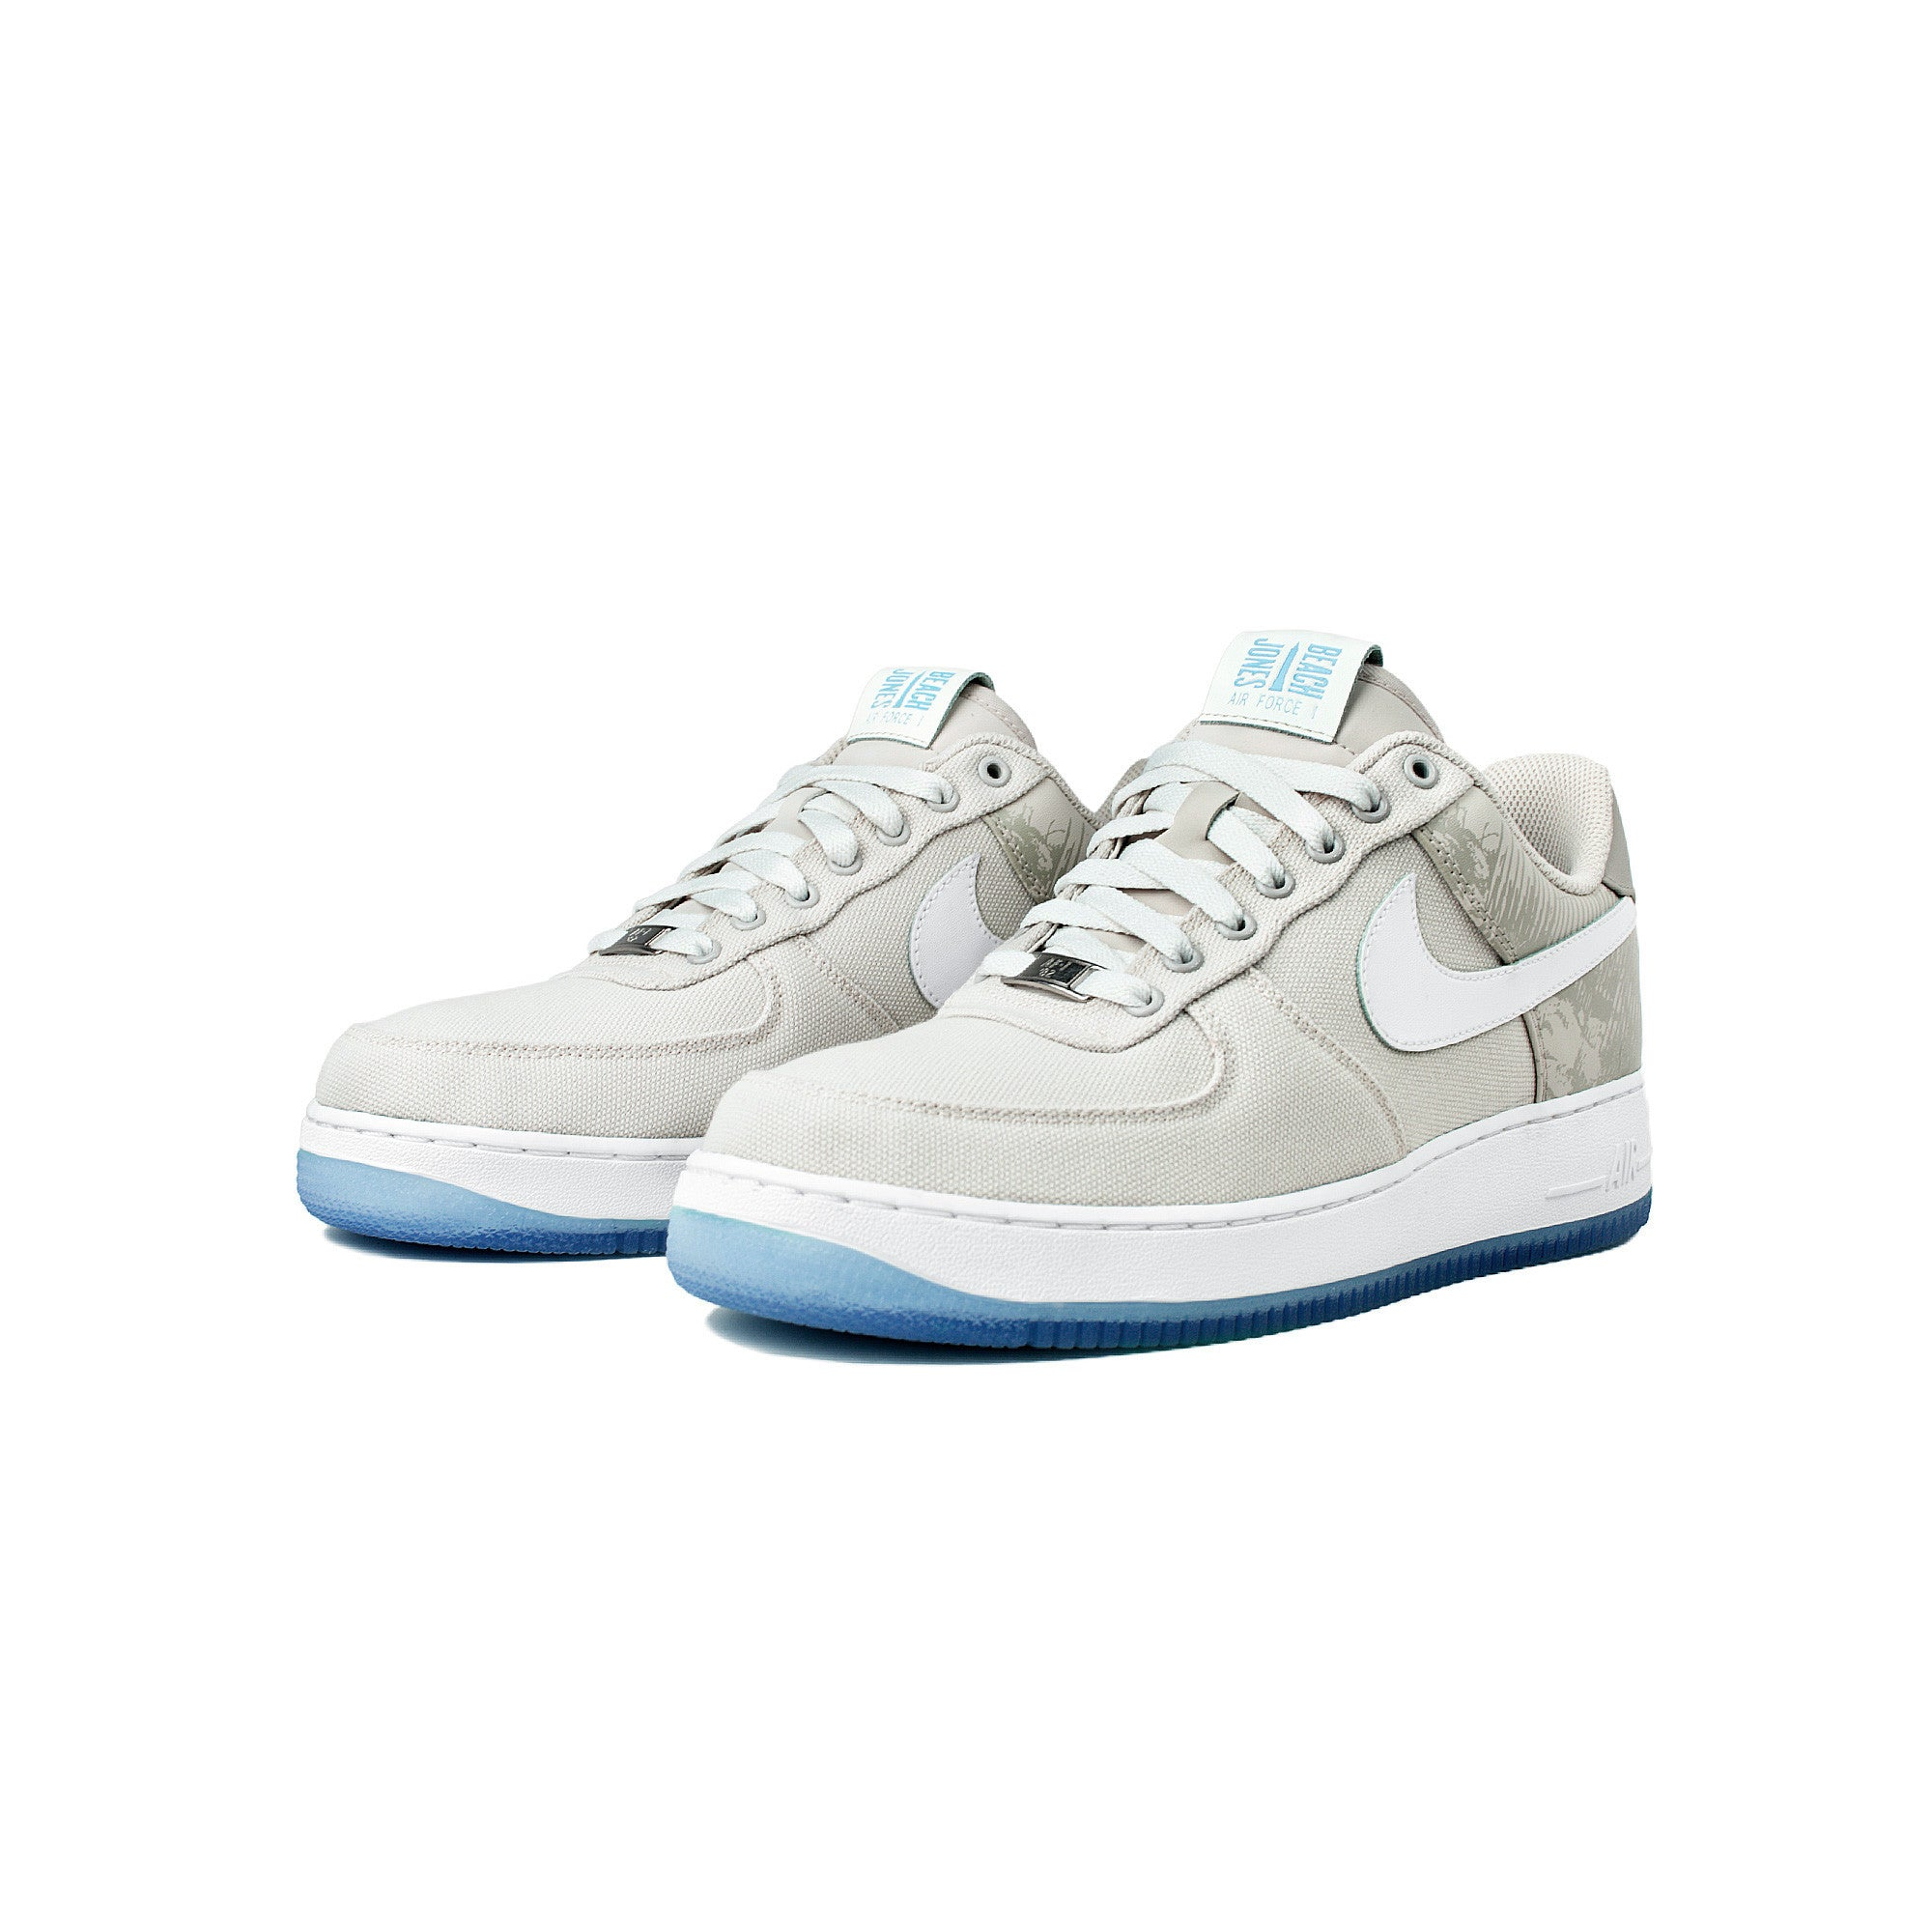 ... Jones Beach 2017 Retro Heel 845053-203 Nike Mens Air Force 1 Low Retro  Nike Mens Air Force 1 Low Retro ... d57101abe